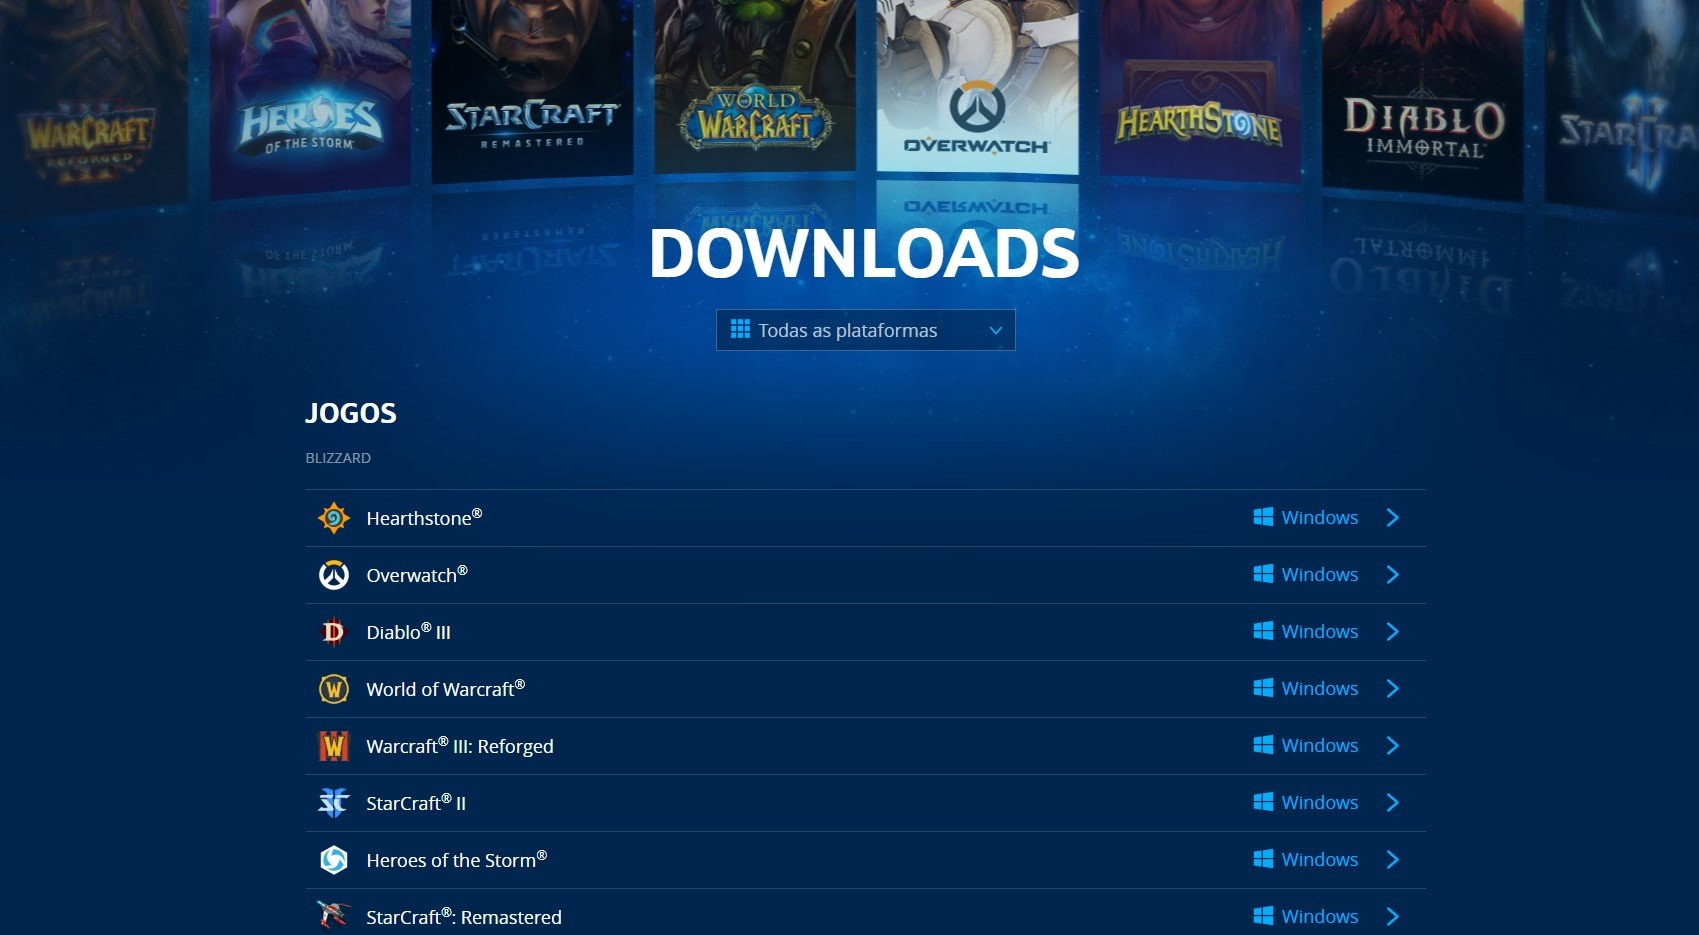 Download jogos Blizzard